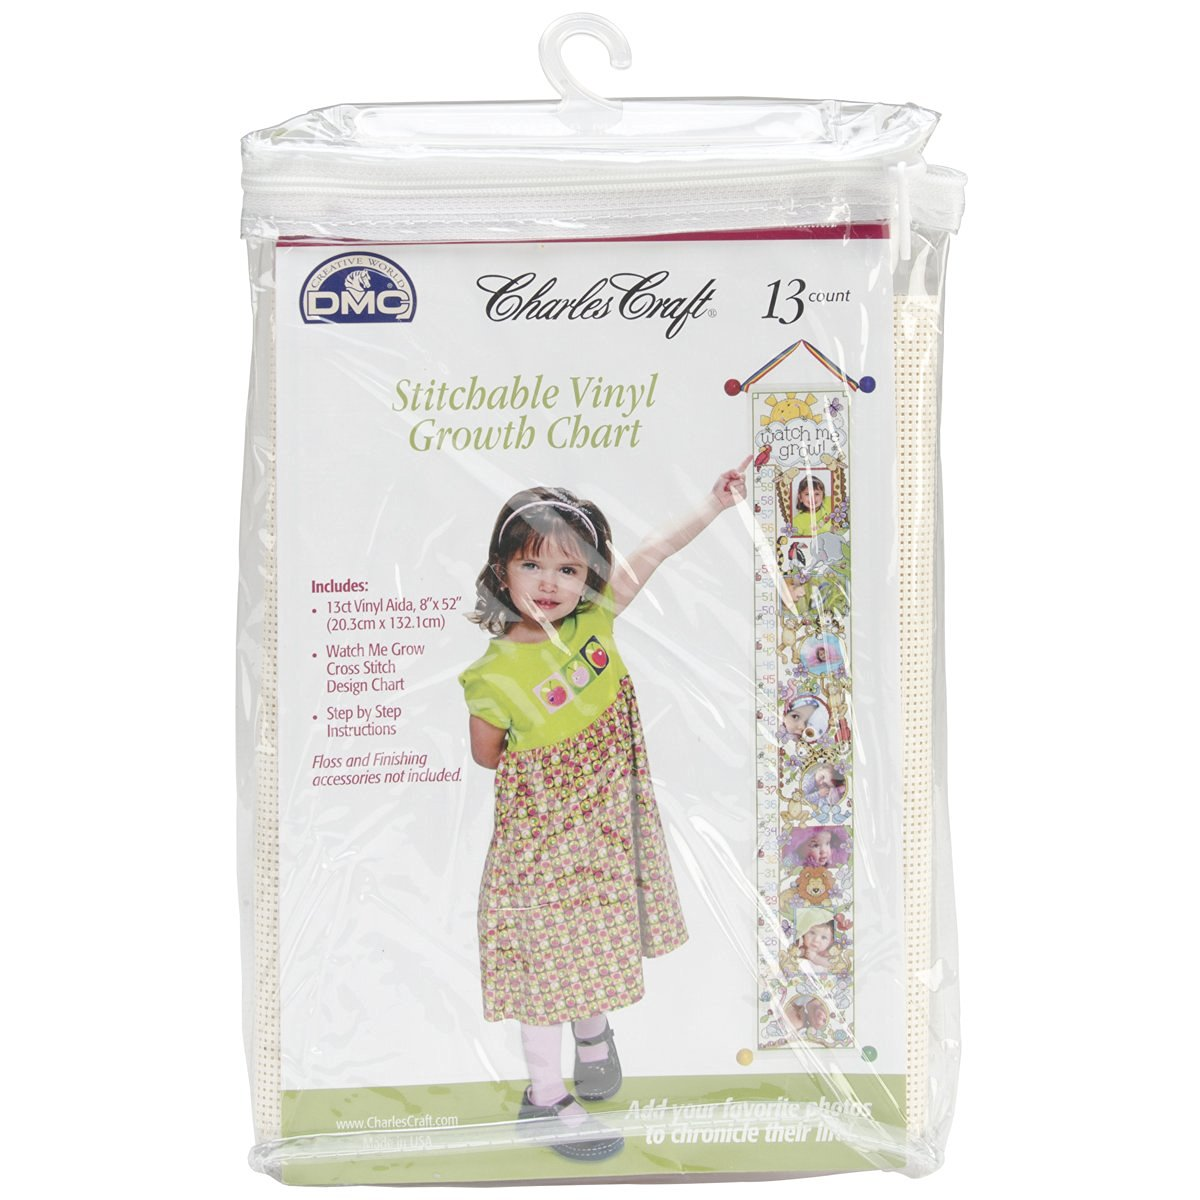 Buy Dmc Ready To Stitch Baby Collection Vinyl Growth Chart 8 By 52